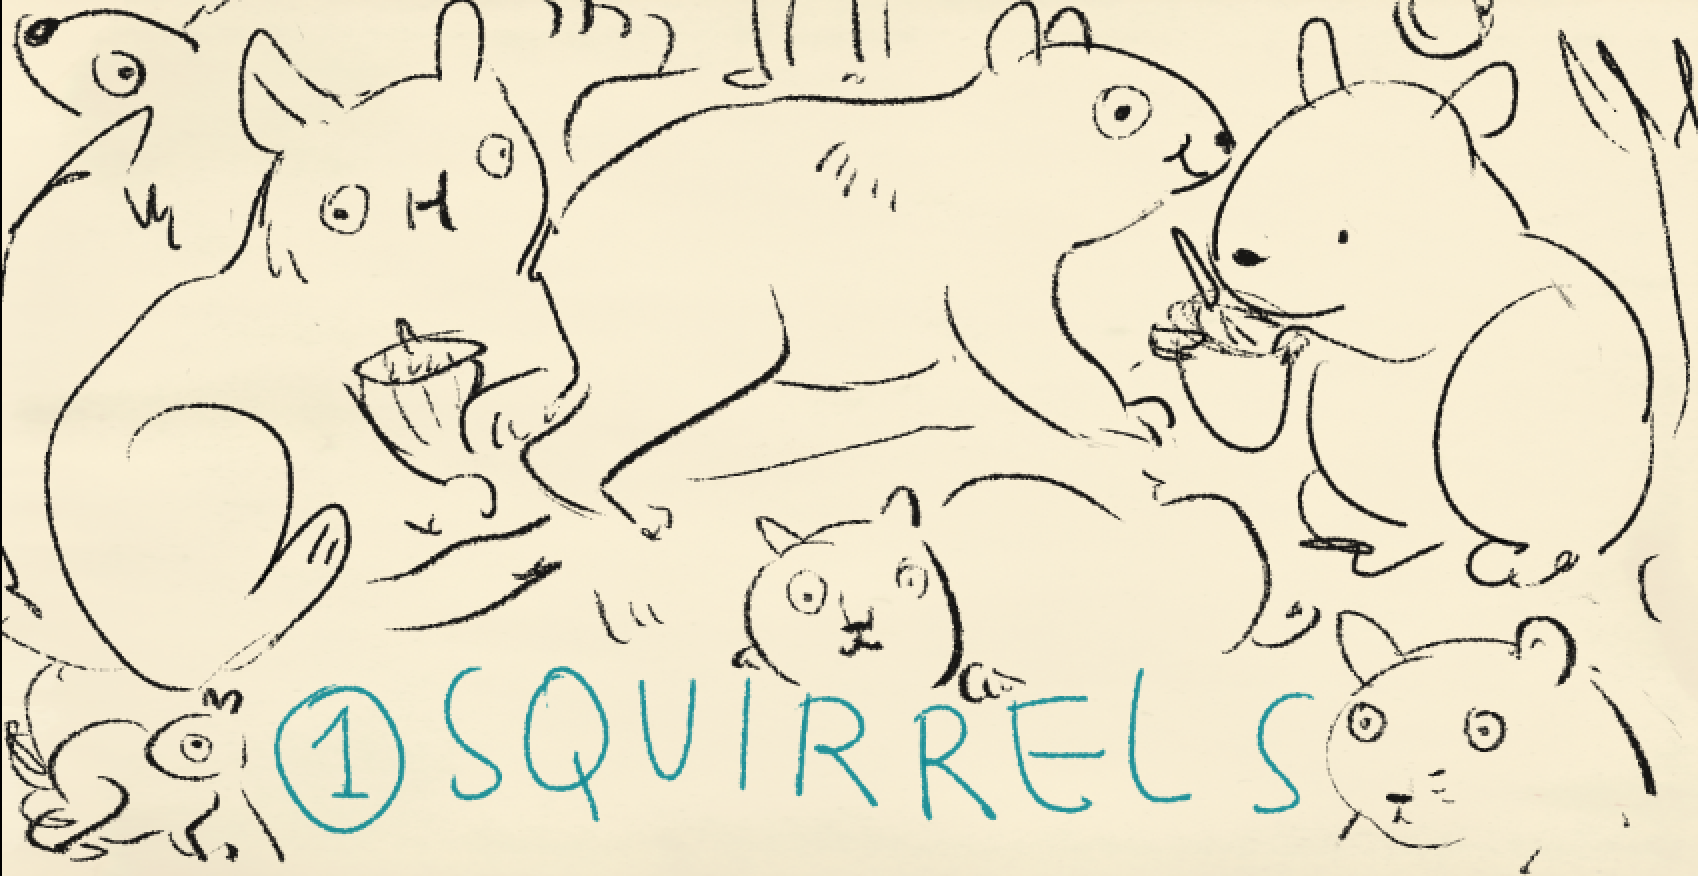 Squirrels!!